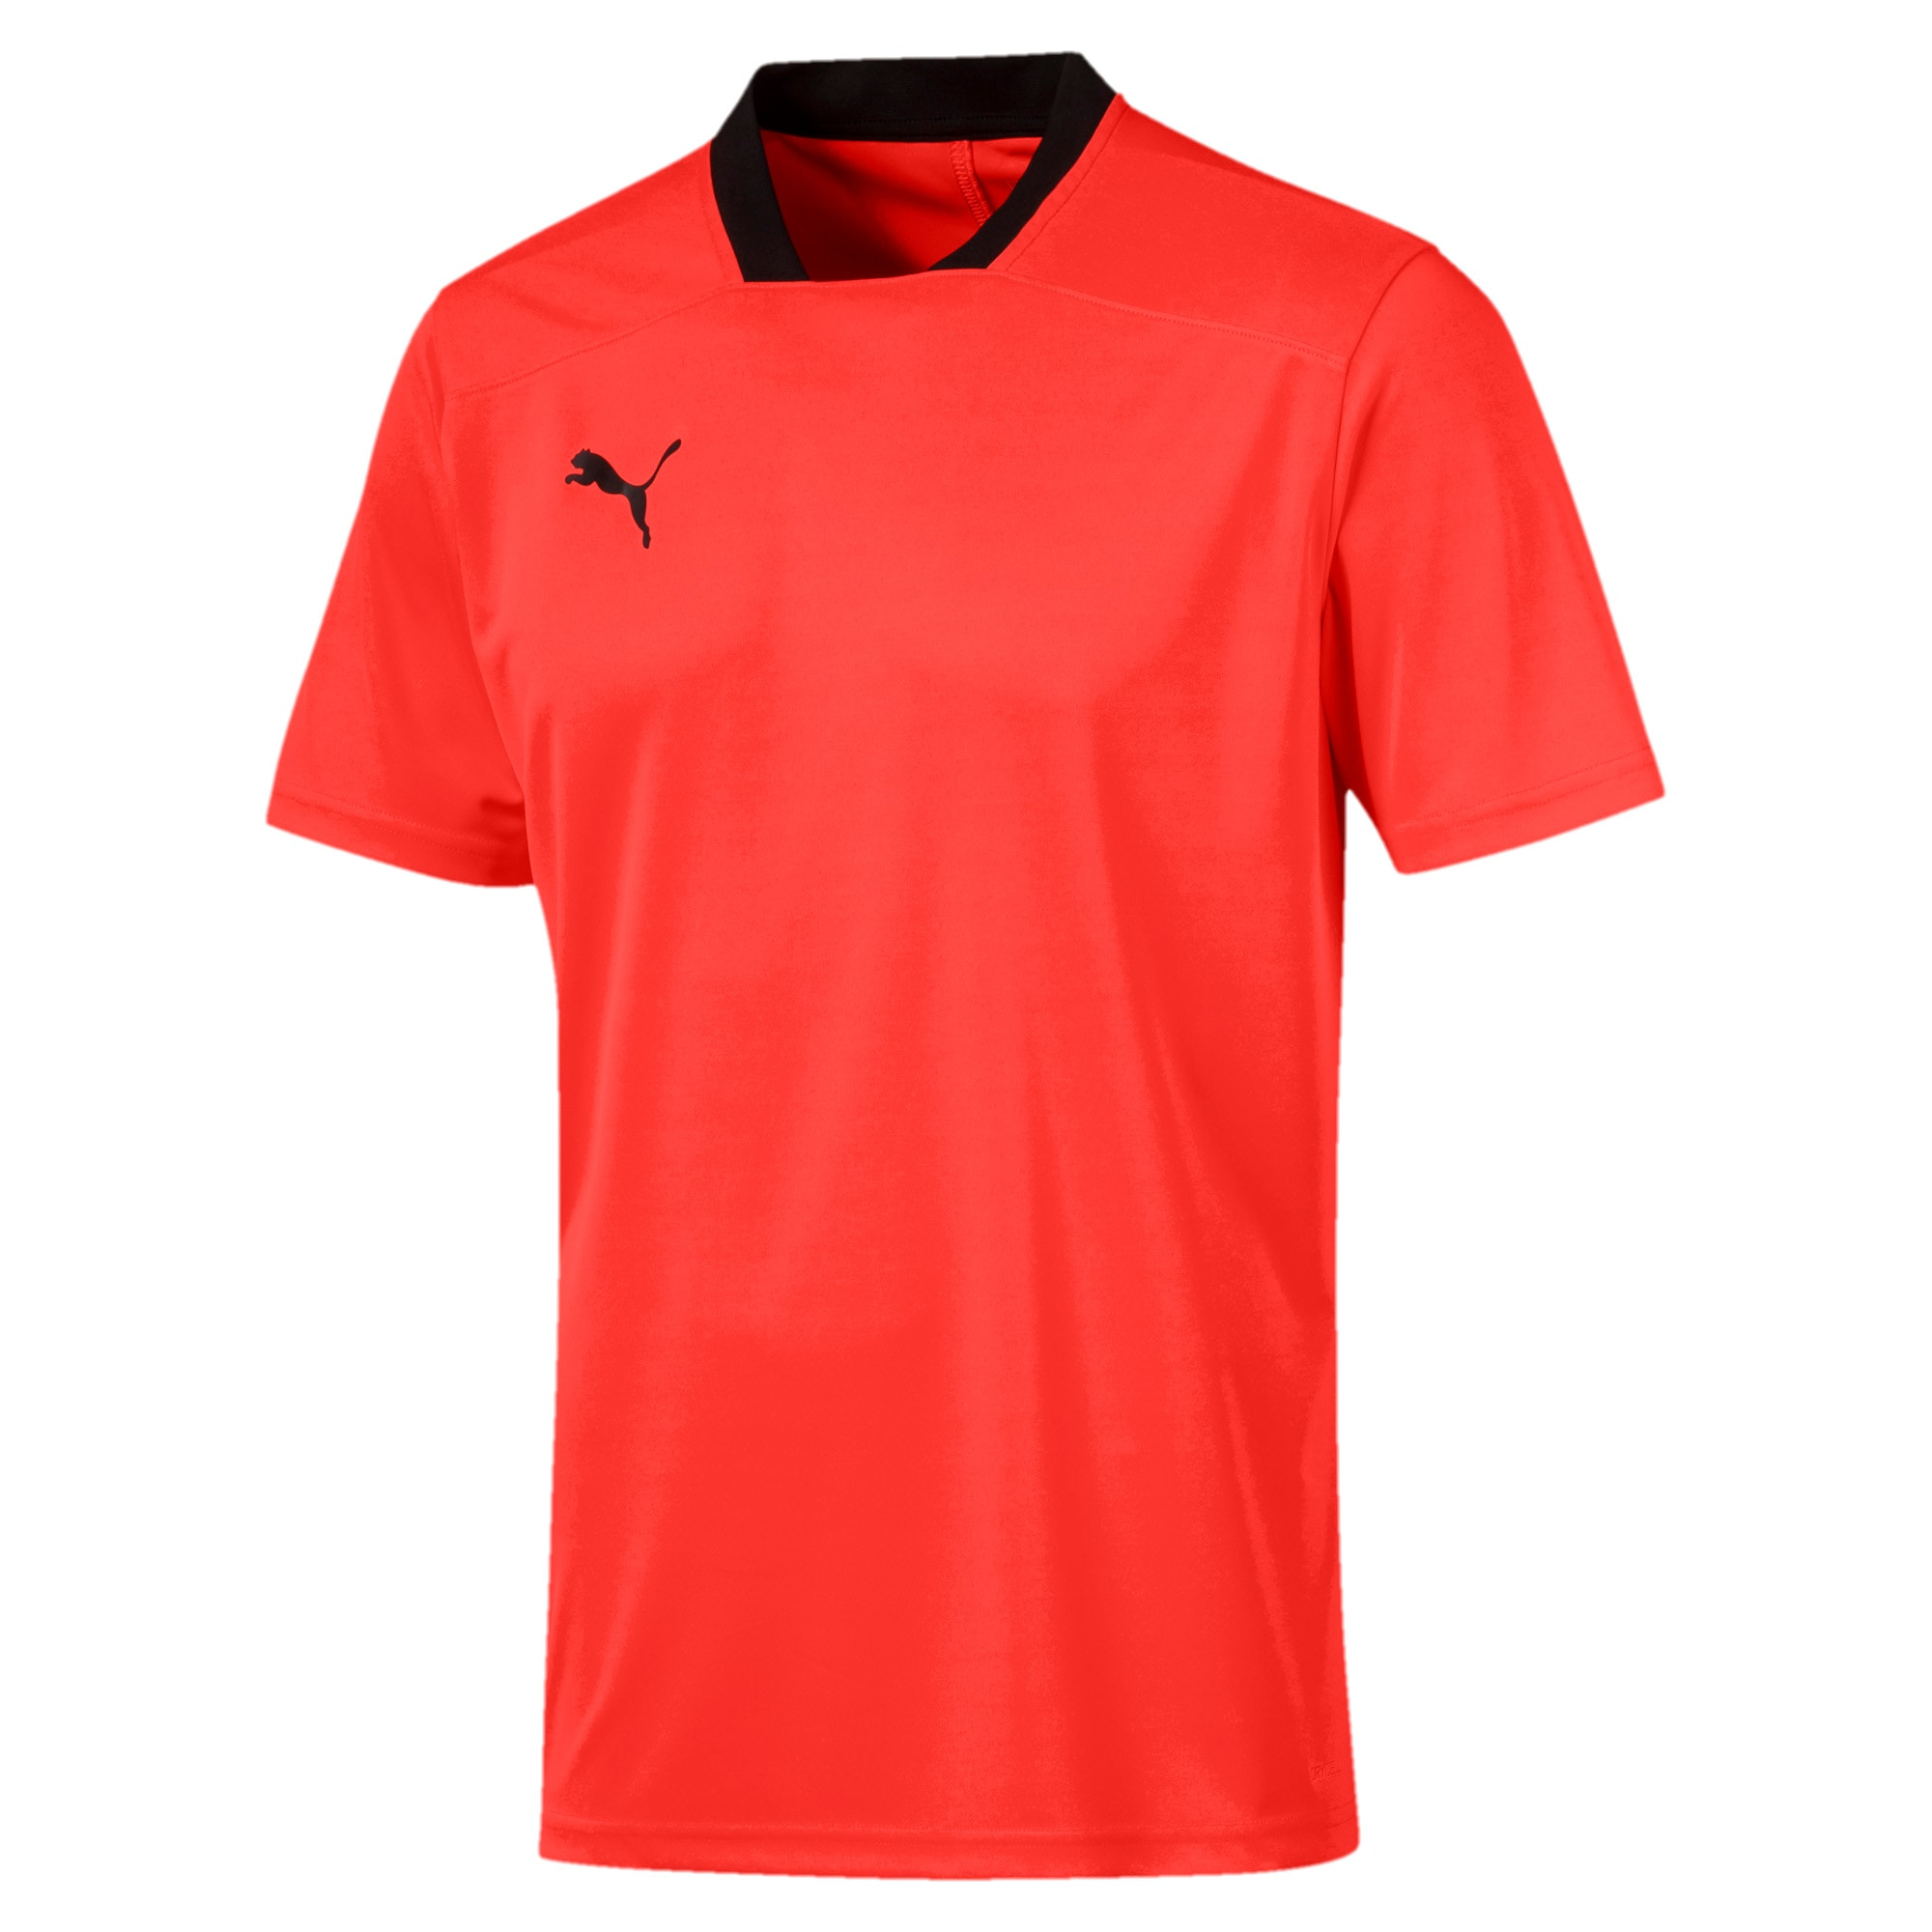 Thumbnail 4 of Herren T-Shirt, Nrgy Red-Puma Black, medium